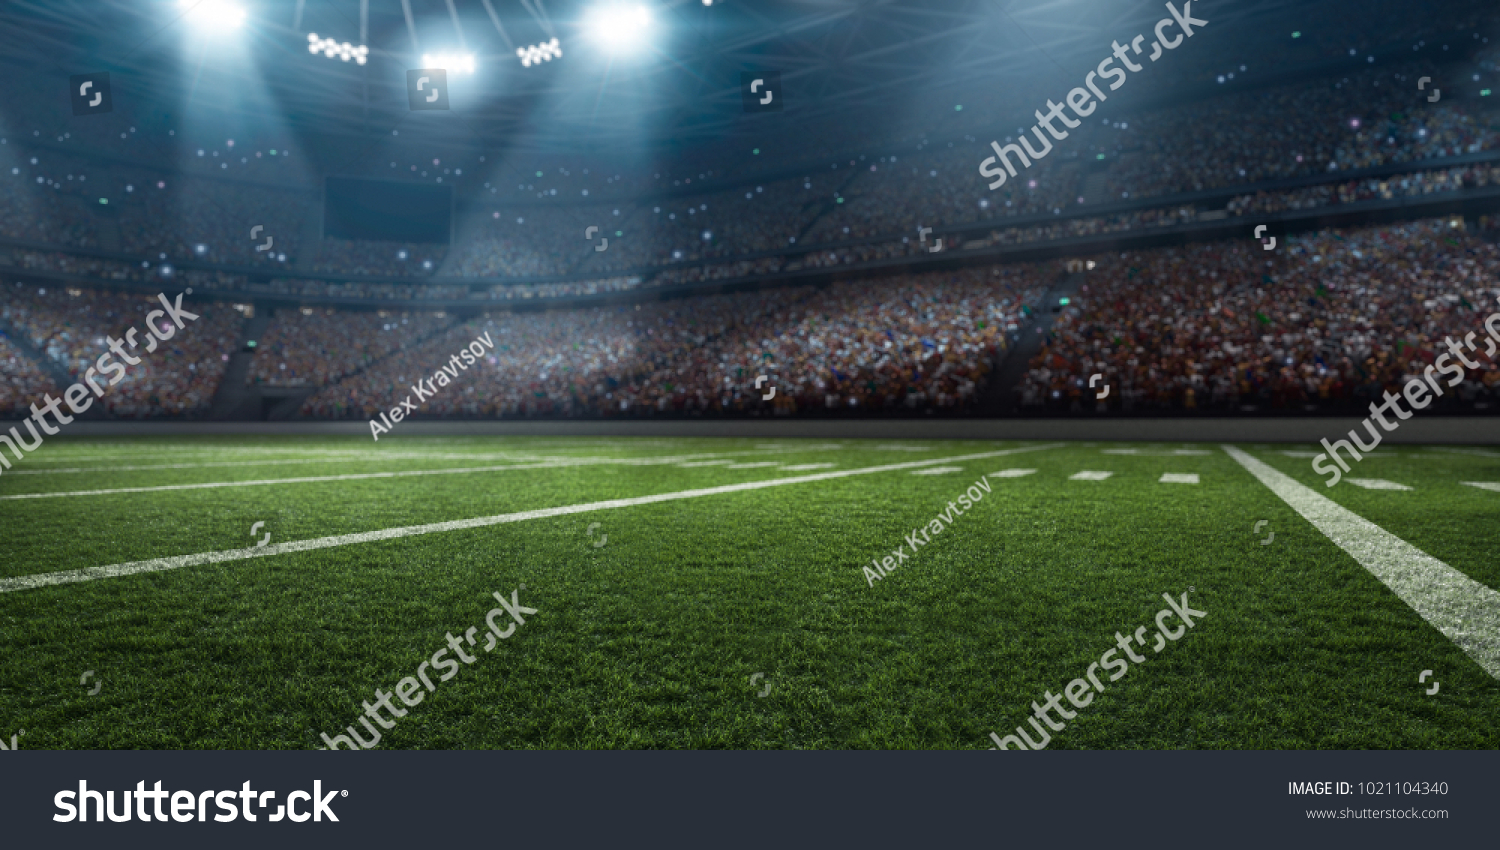 Dramatic 3D professional American football arena with green grass and rays of light #1021104340